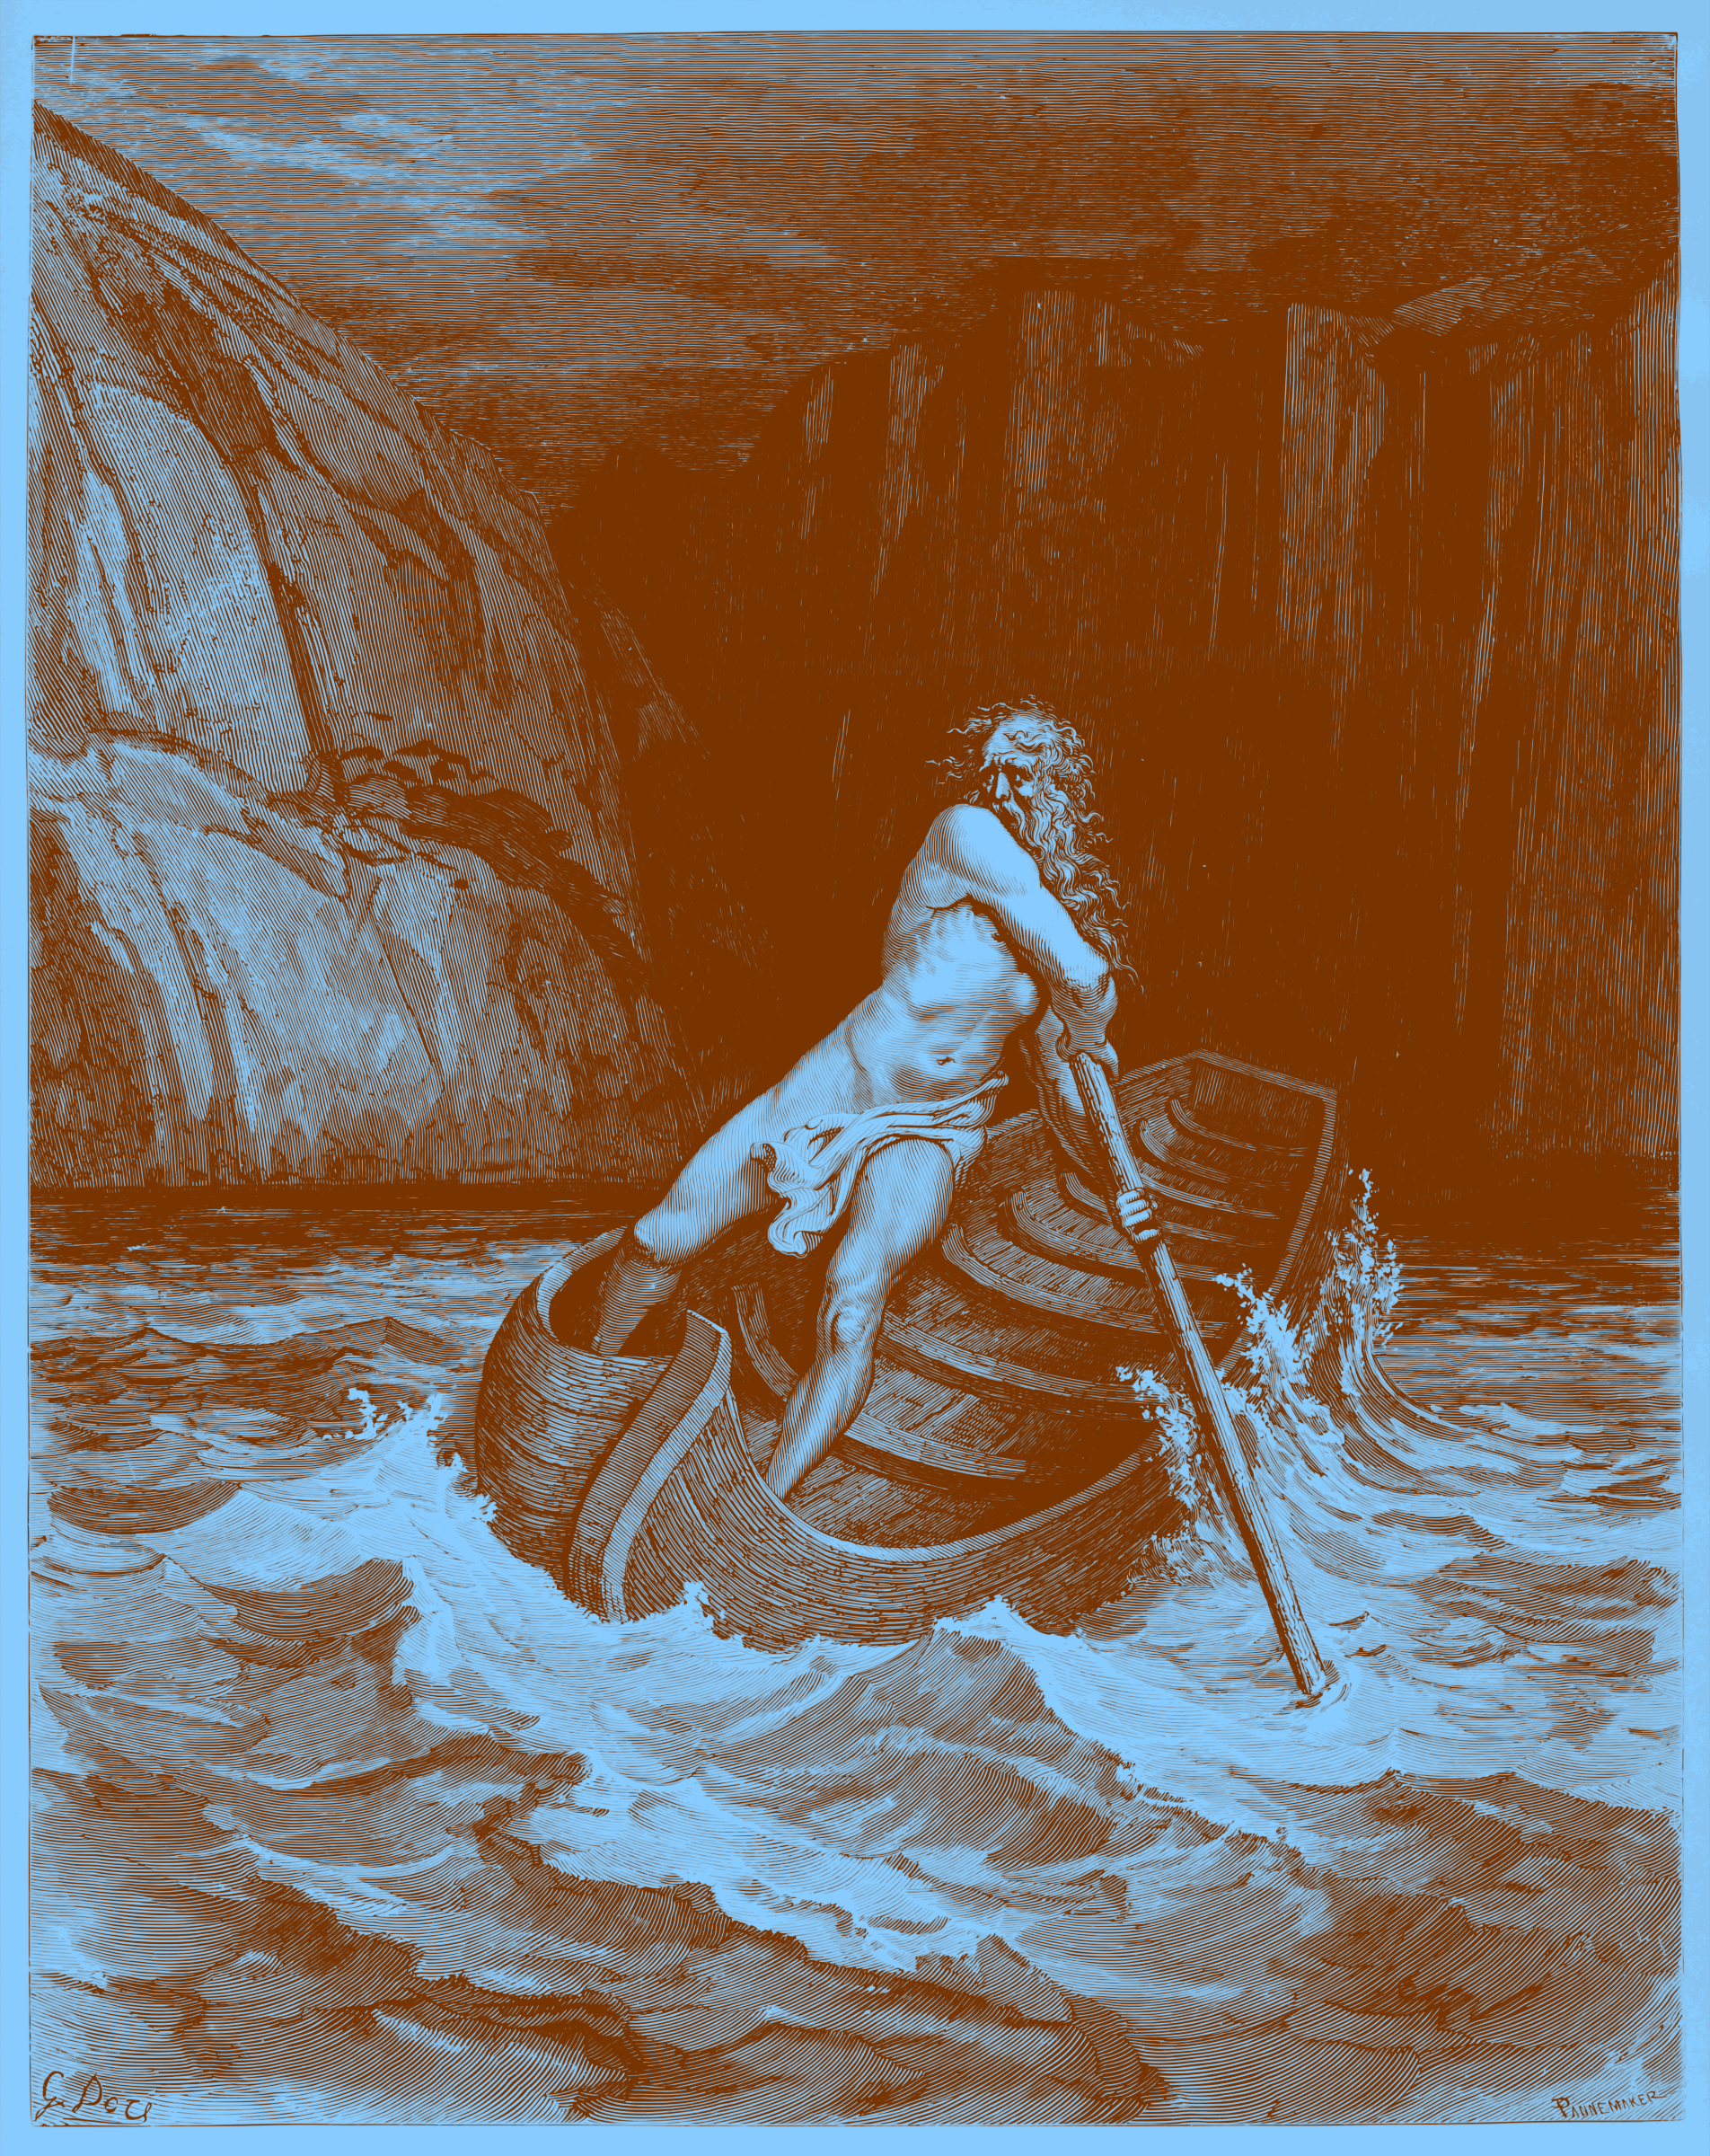 Charon, by Doré 1857 (in orange ink on blue paper) by AdamStanislav